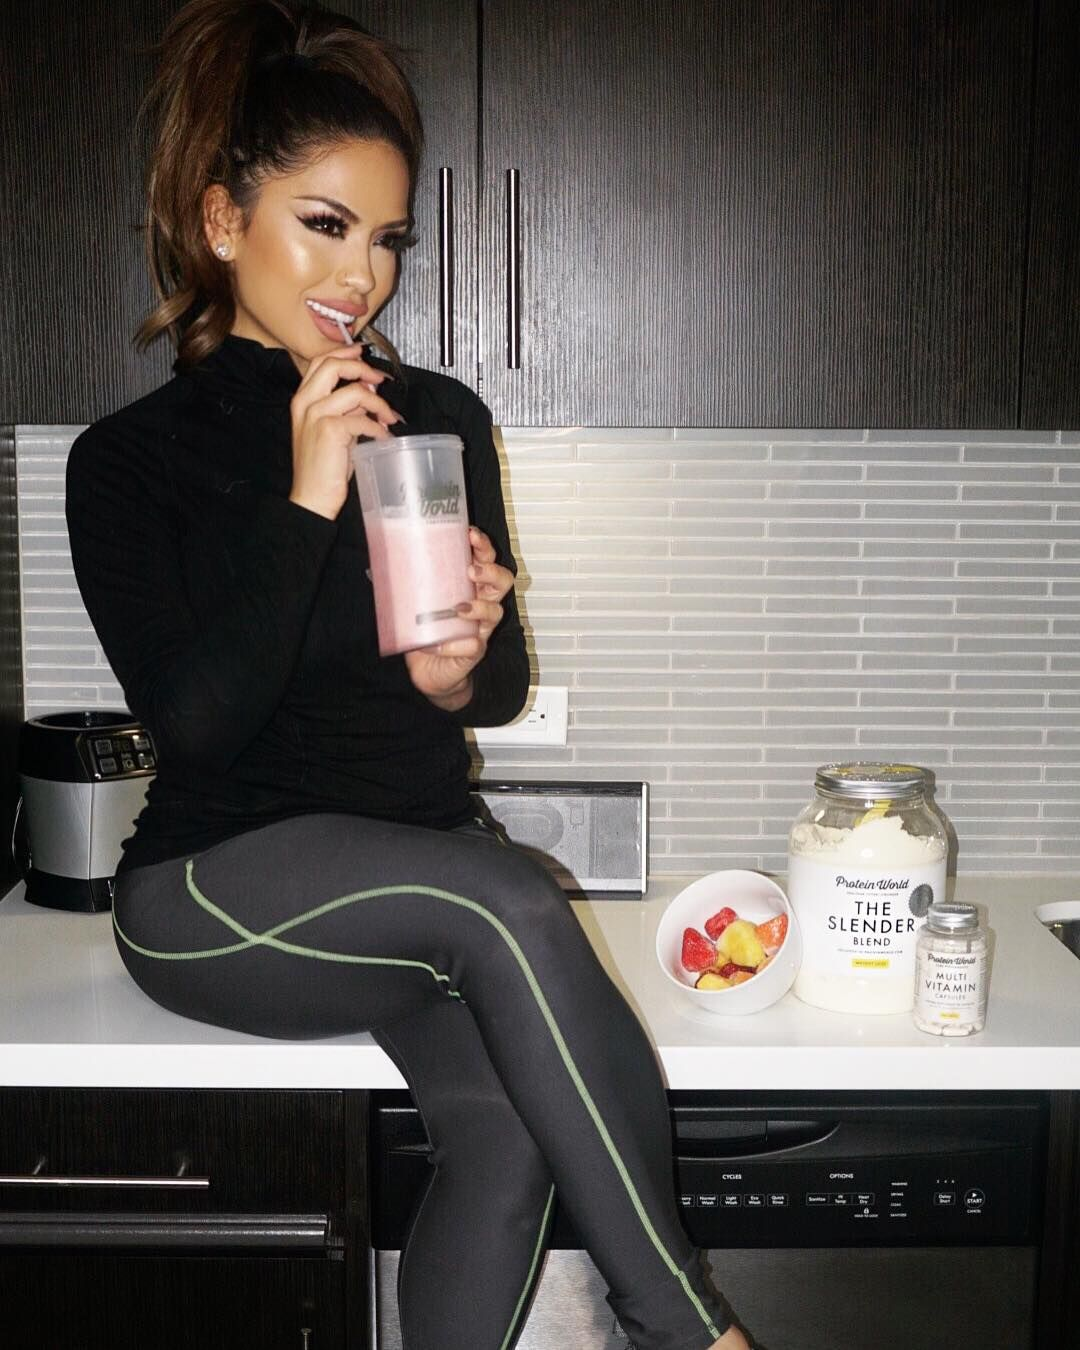 """Rise and shine  healthy start with a Protein World shake to get my morning & mood right..."" @iluvsarahii ♡♥♡♥♡♥ #fitness #beauty"